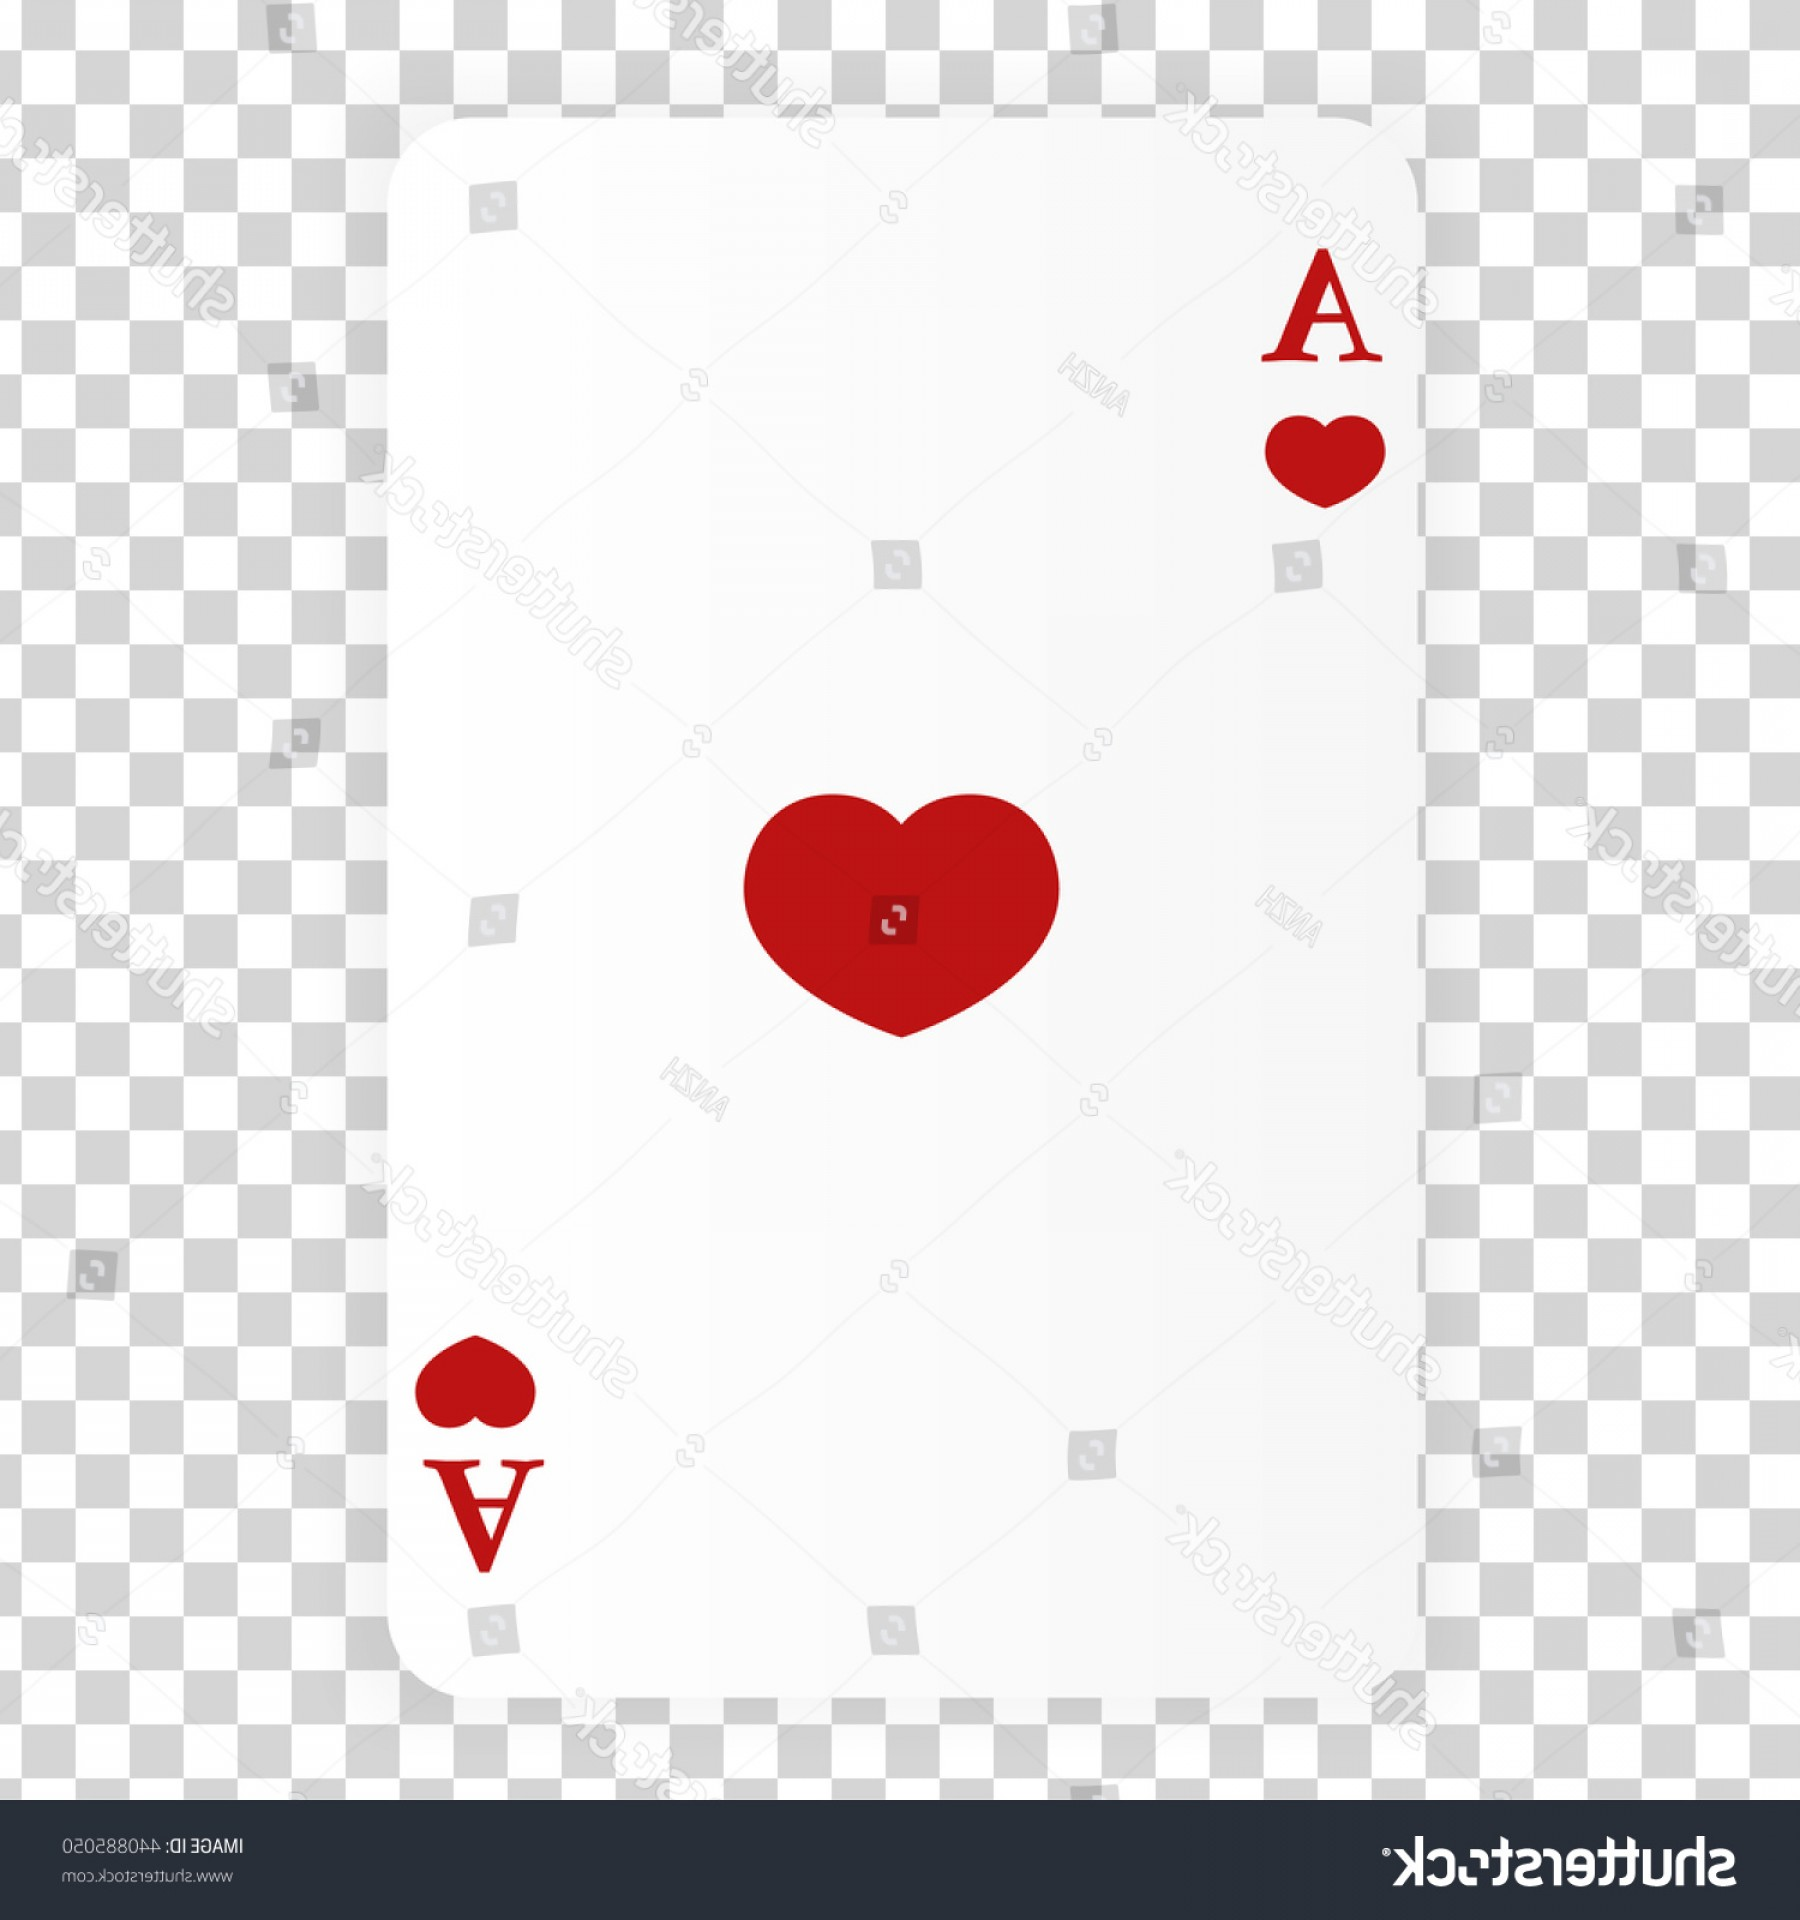 Heart Card Vector: Ace Hearts Card Poker Vector Playing